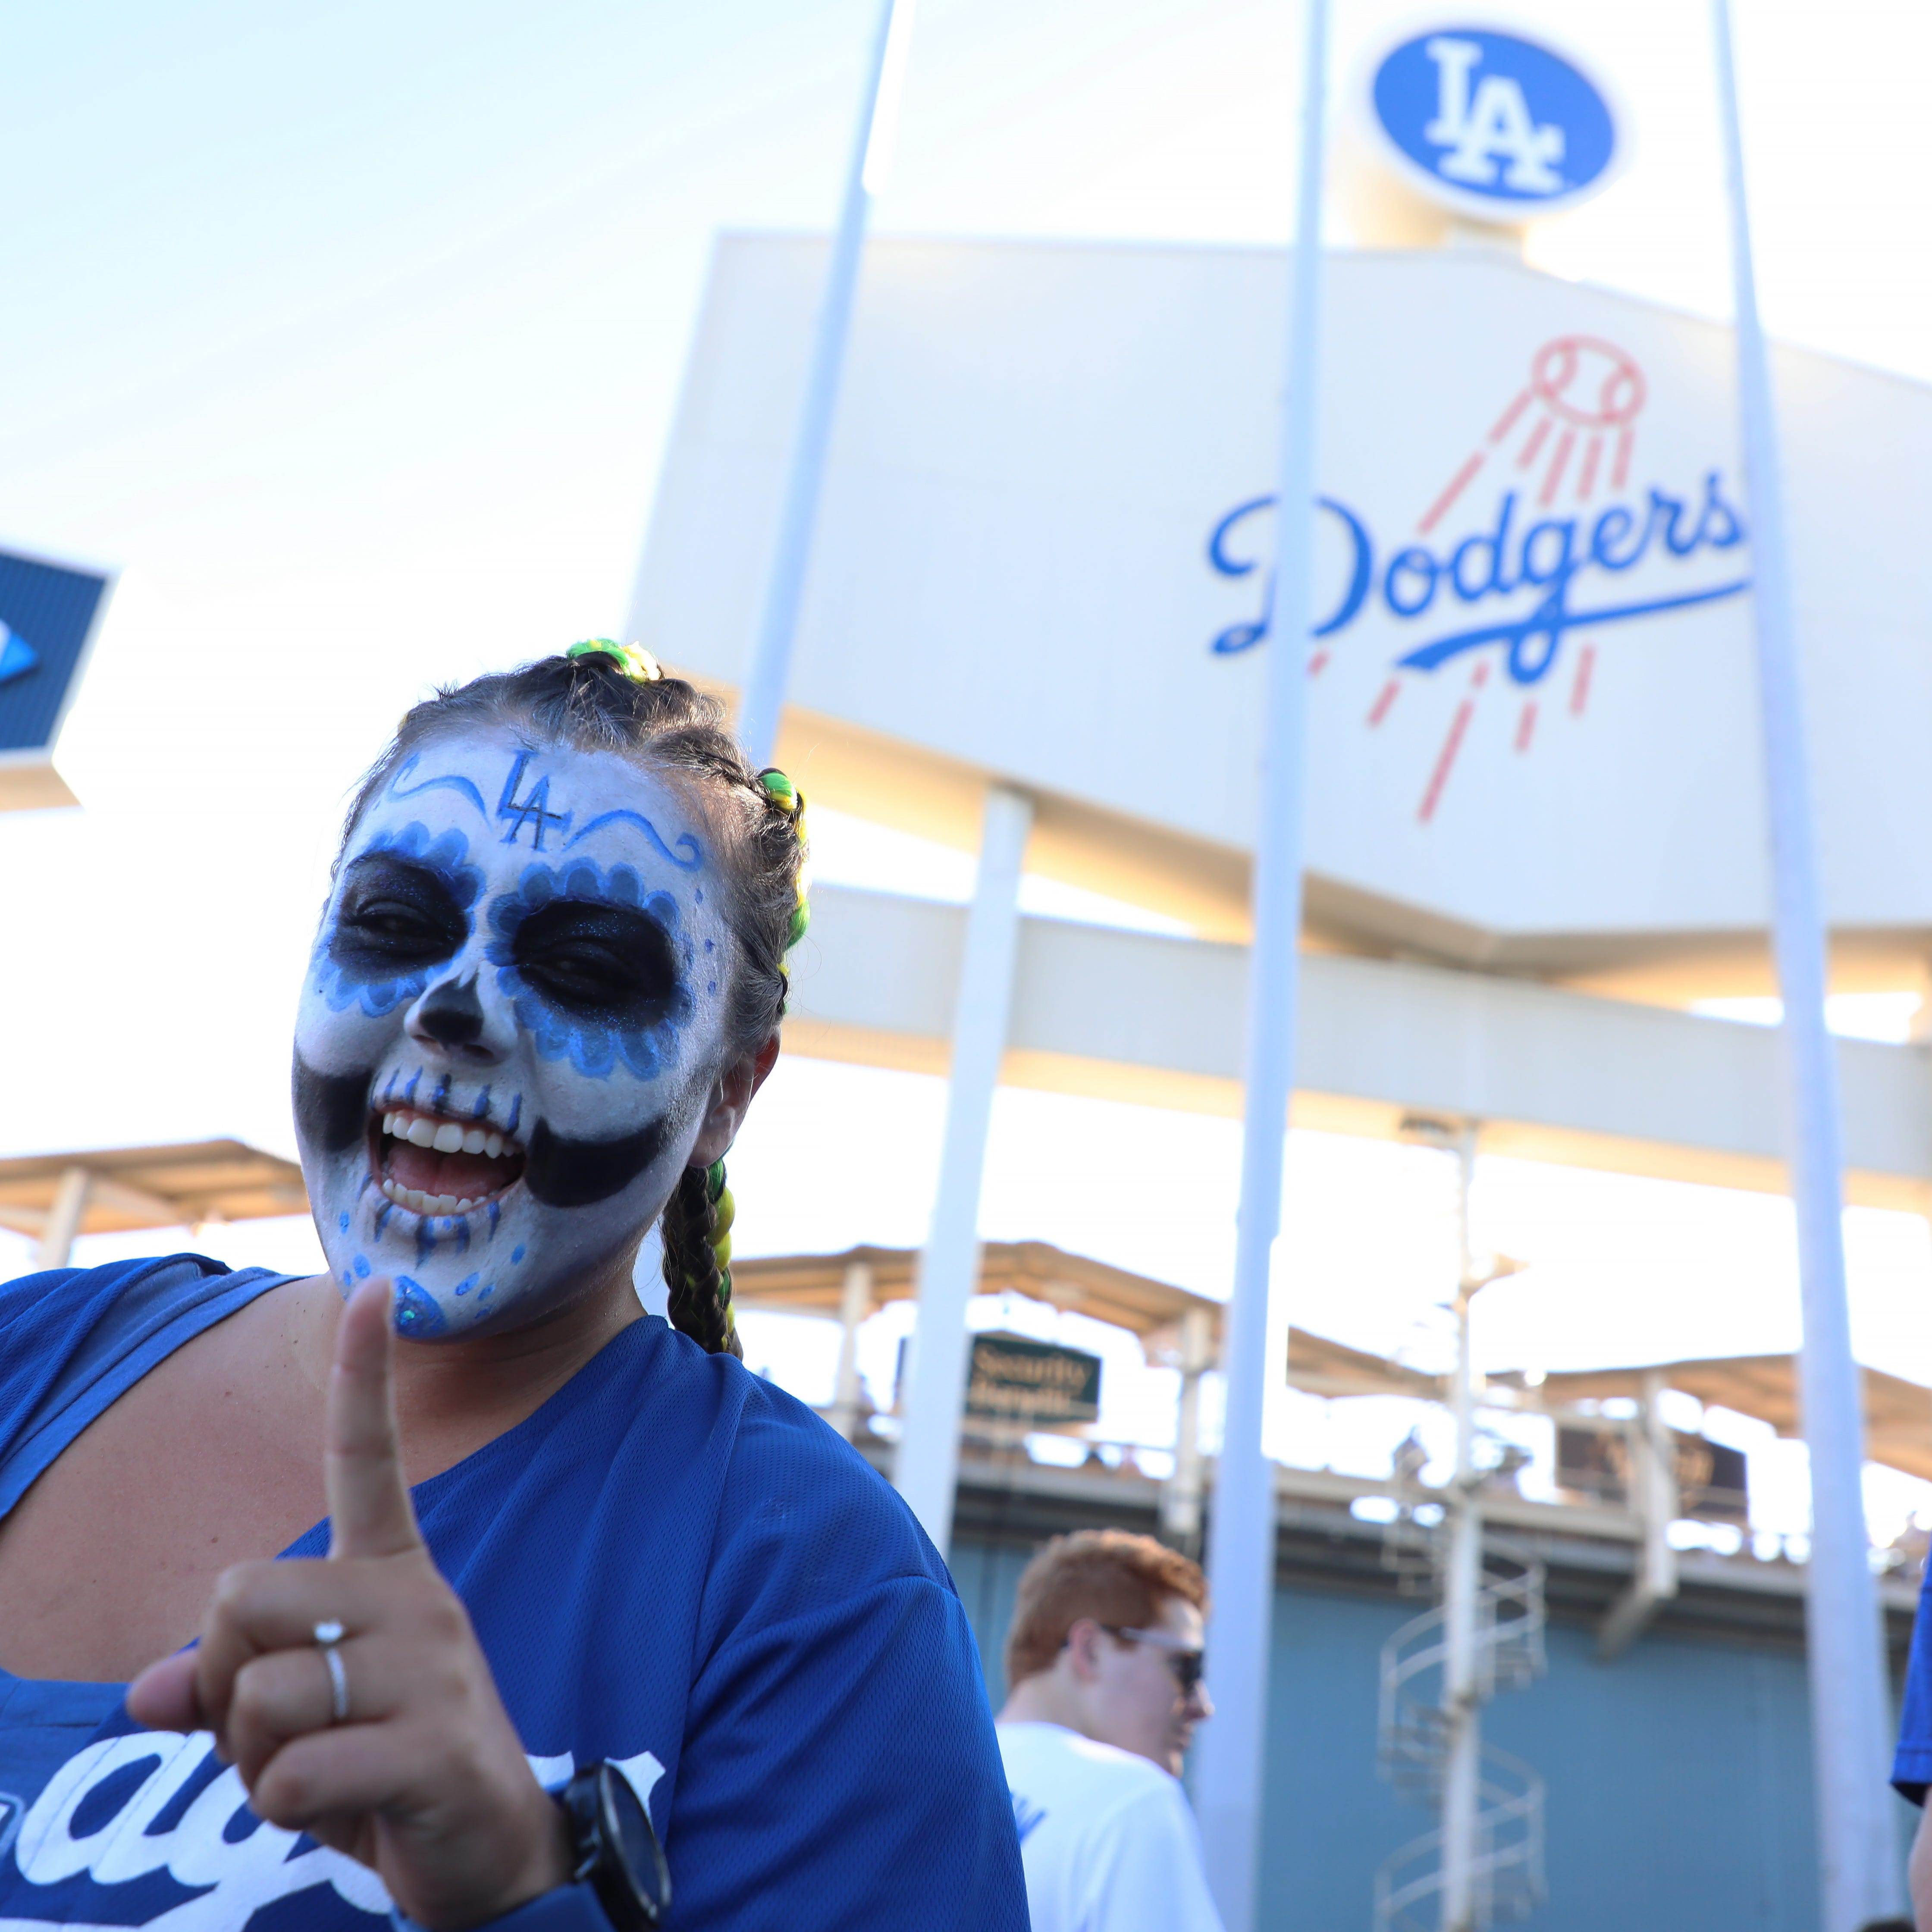 Inside Dodgers' plan to revolutionize the fan experience: 'This is a show business'